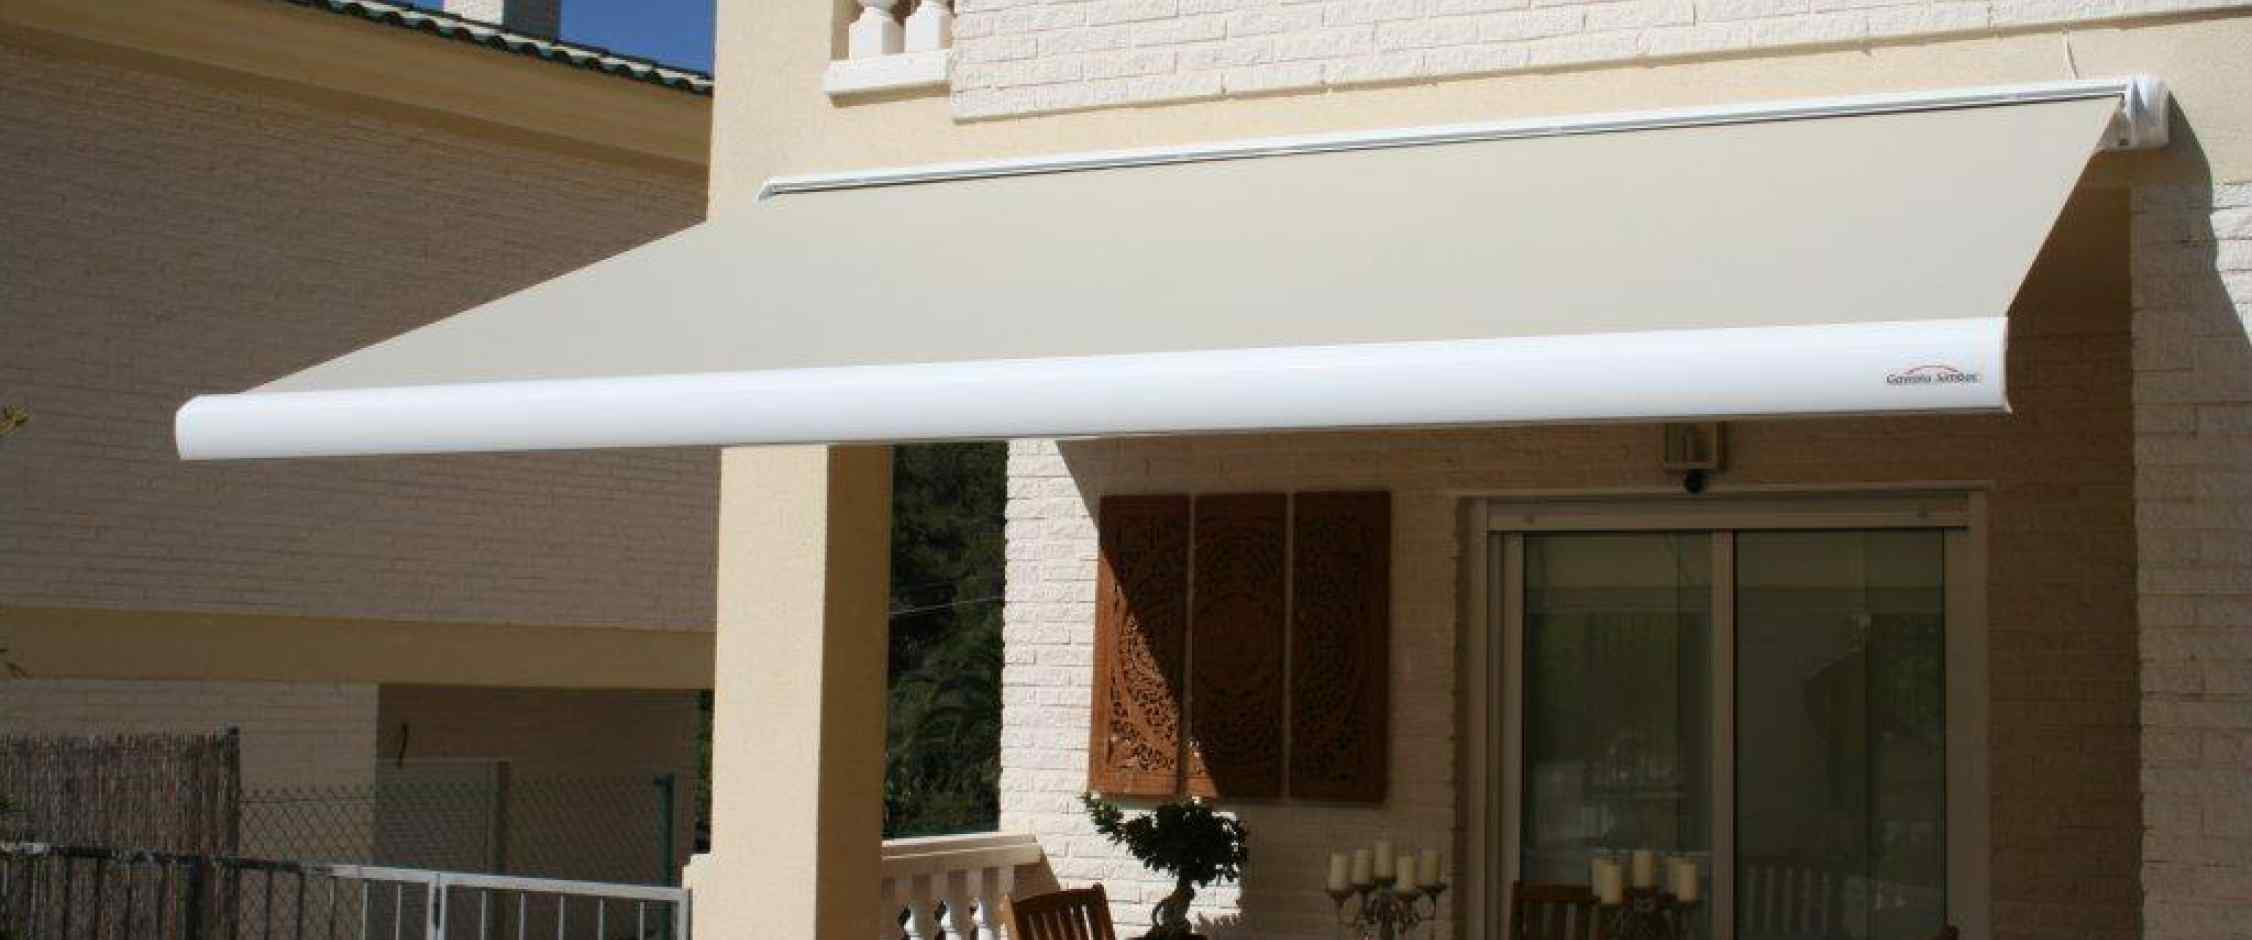 Toldo brazo invisible IRIS